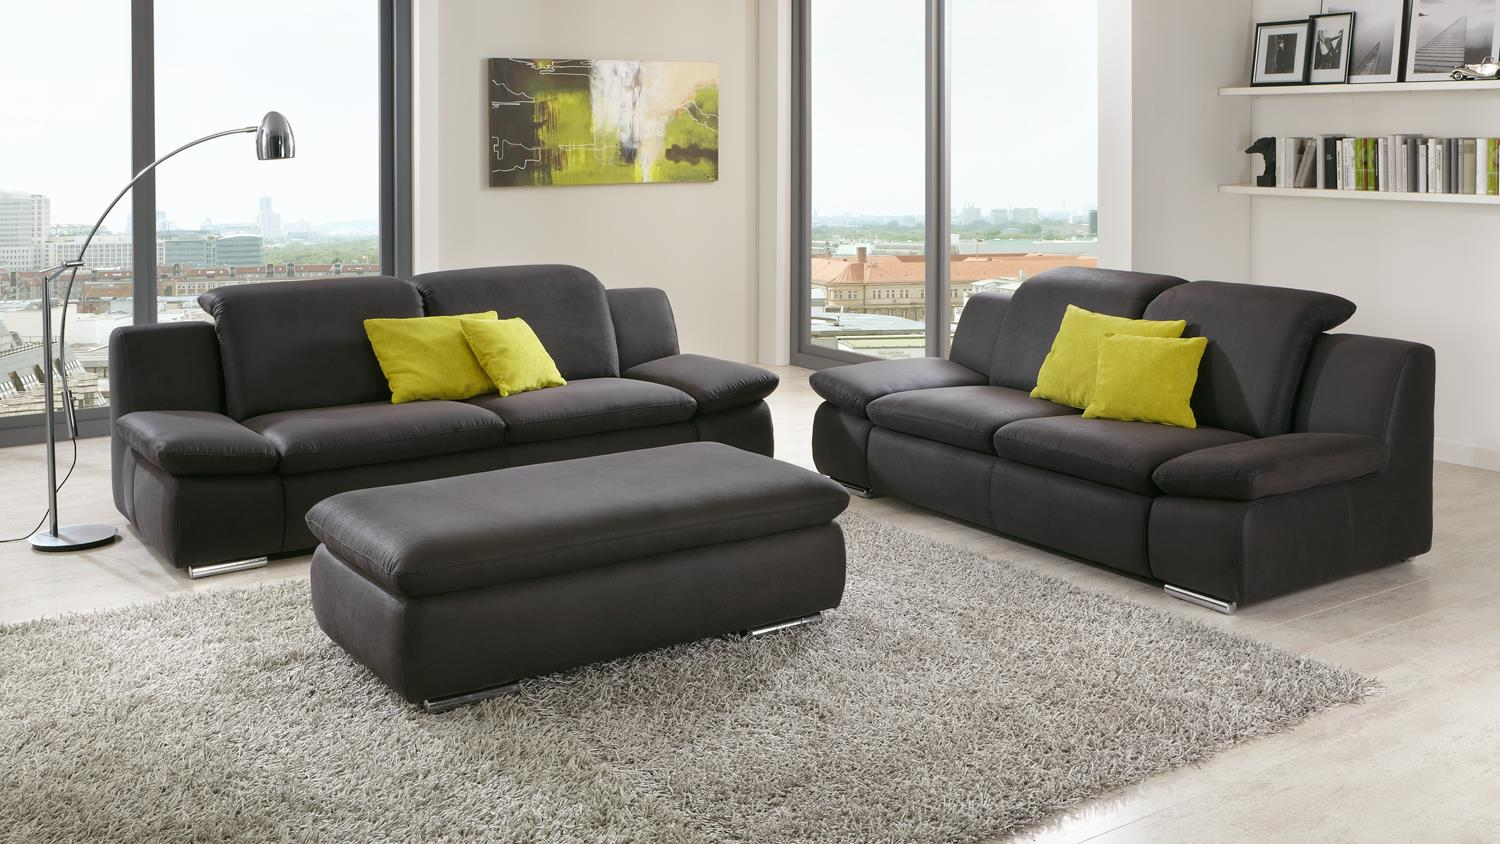 sofa isona 3 sitzer anthrazit mit kopfteilverstellung armteilfunktion. Black Bedroom Furniture Sets. Home Design Ideas